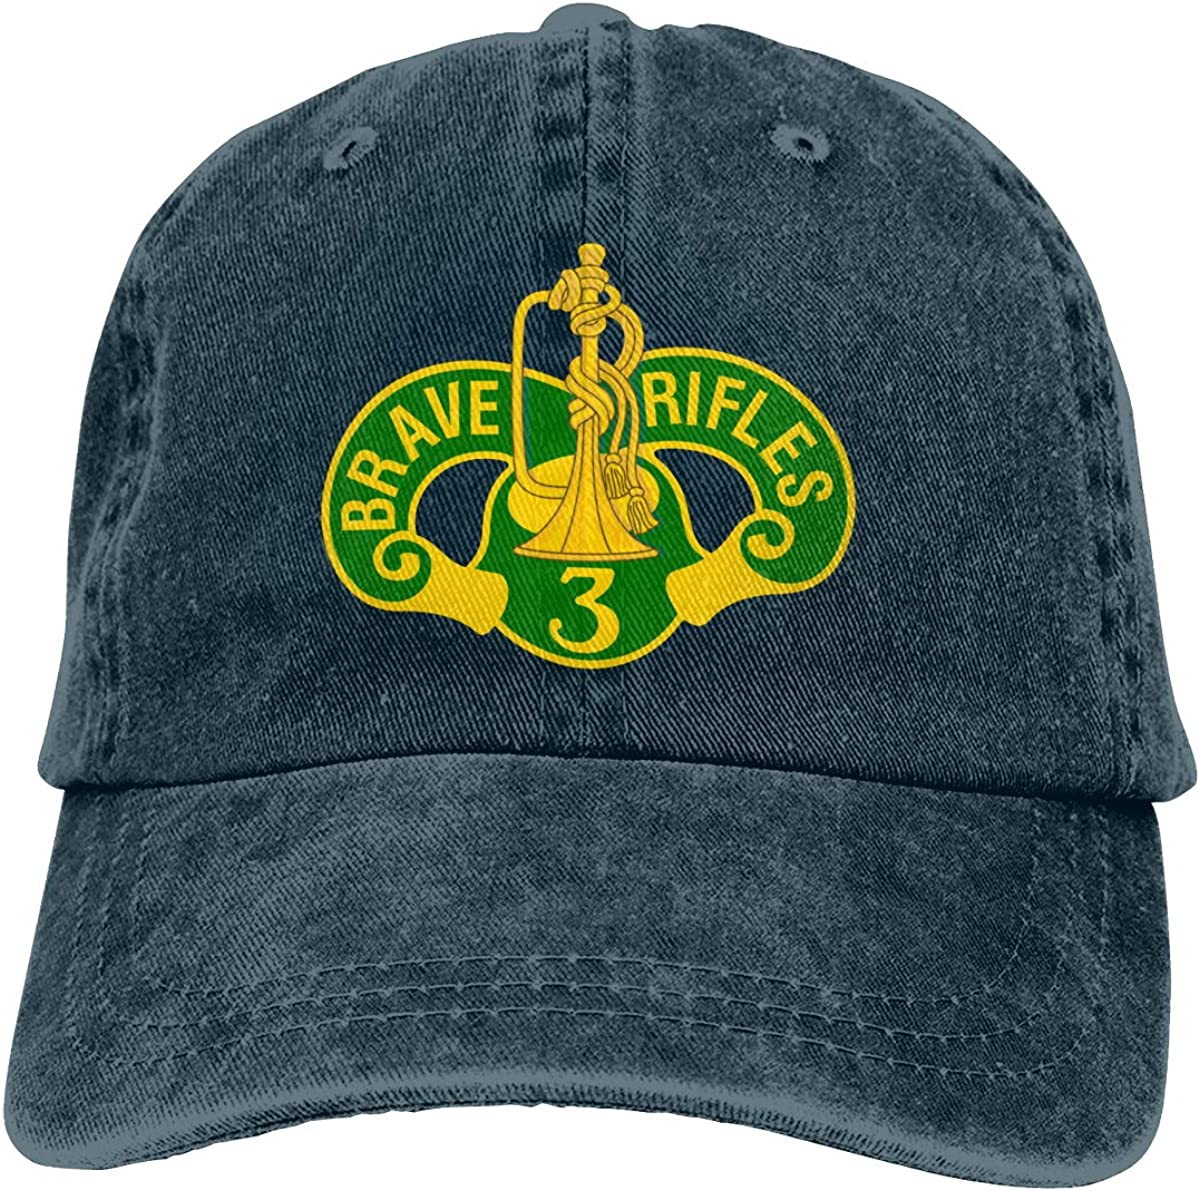 1st Cavalry Division Classic Adult Caps Printing Bend Along Baseball Hat Snapback Unisex Cap Adjustable